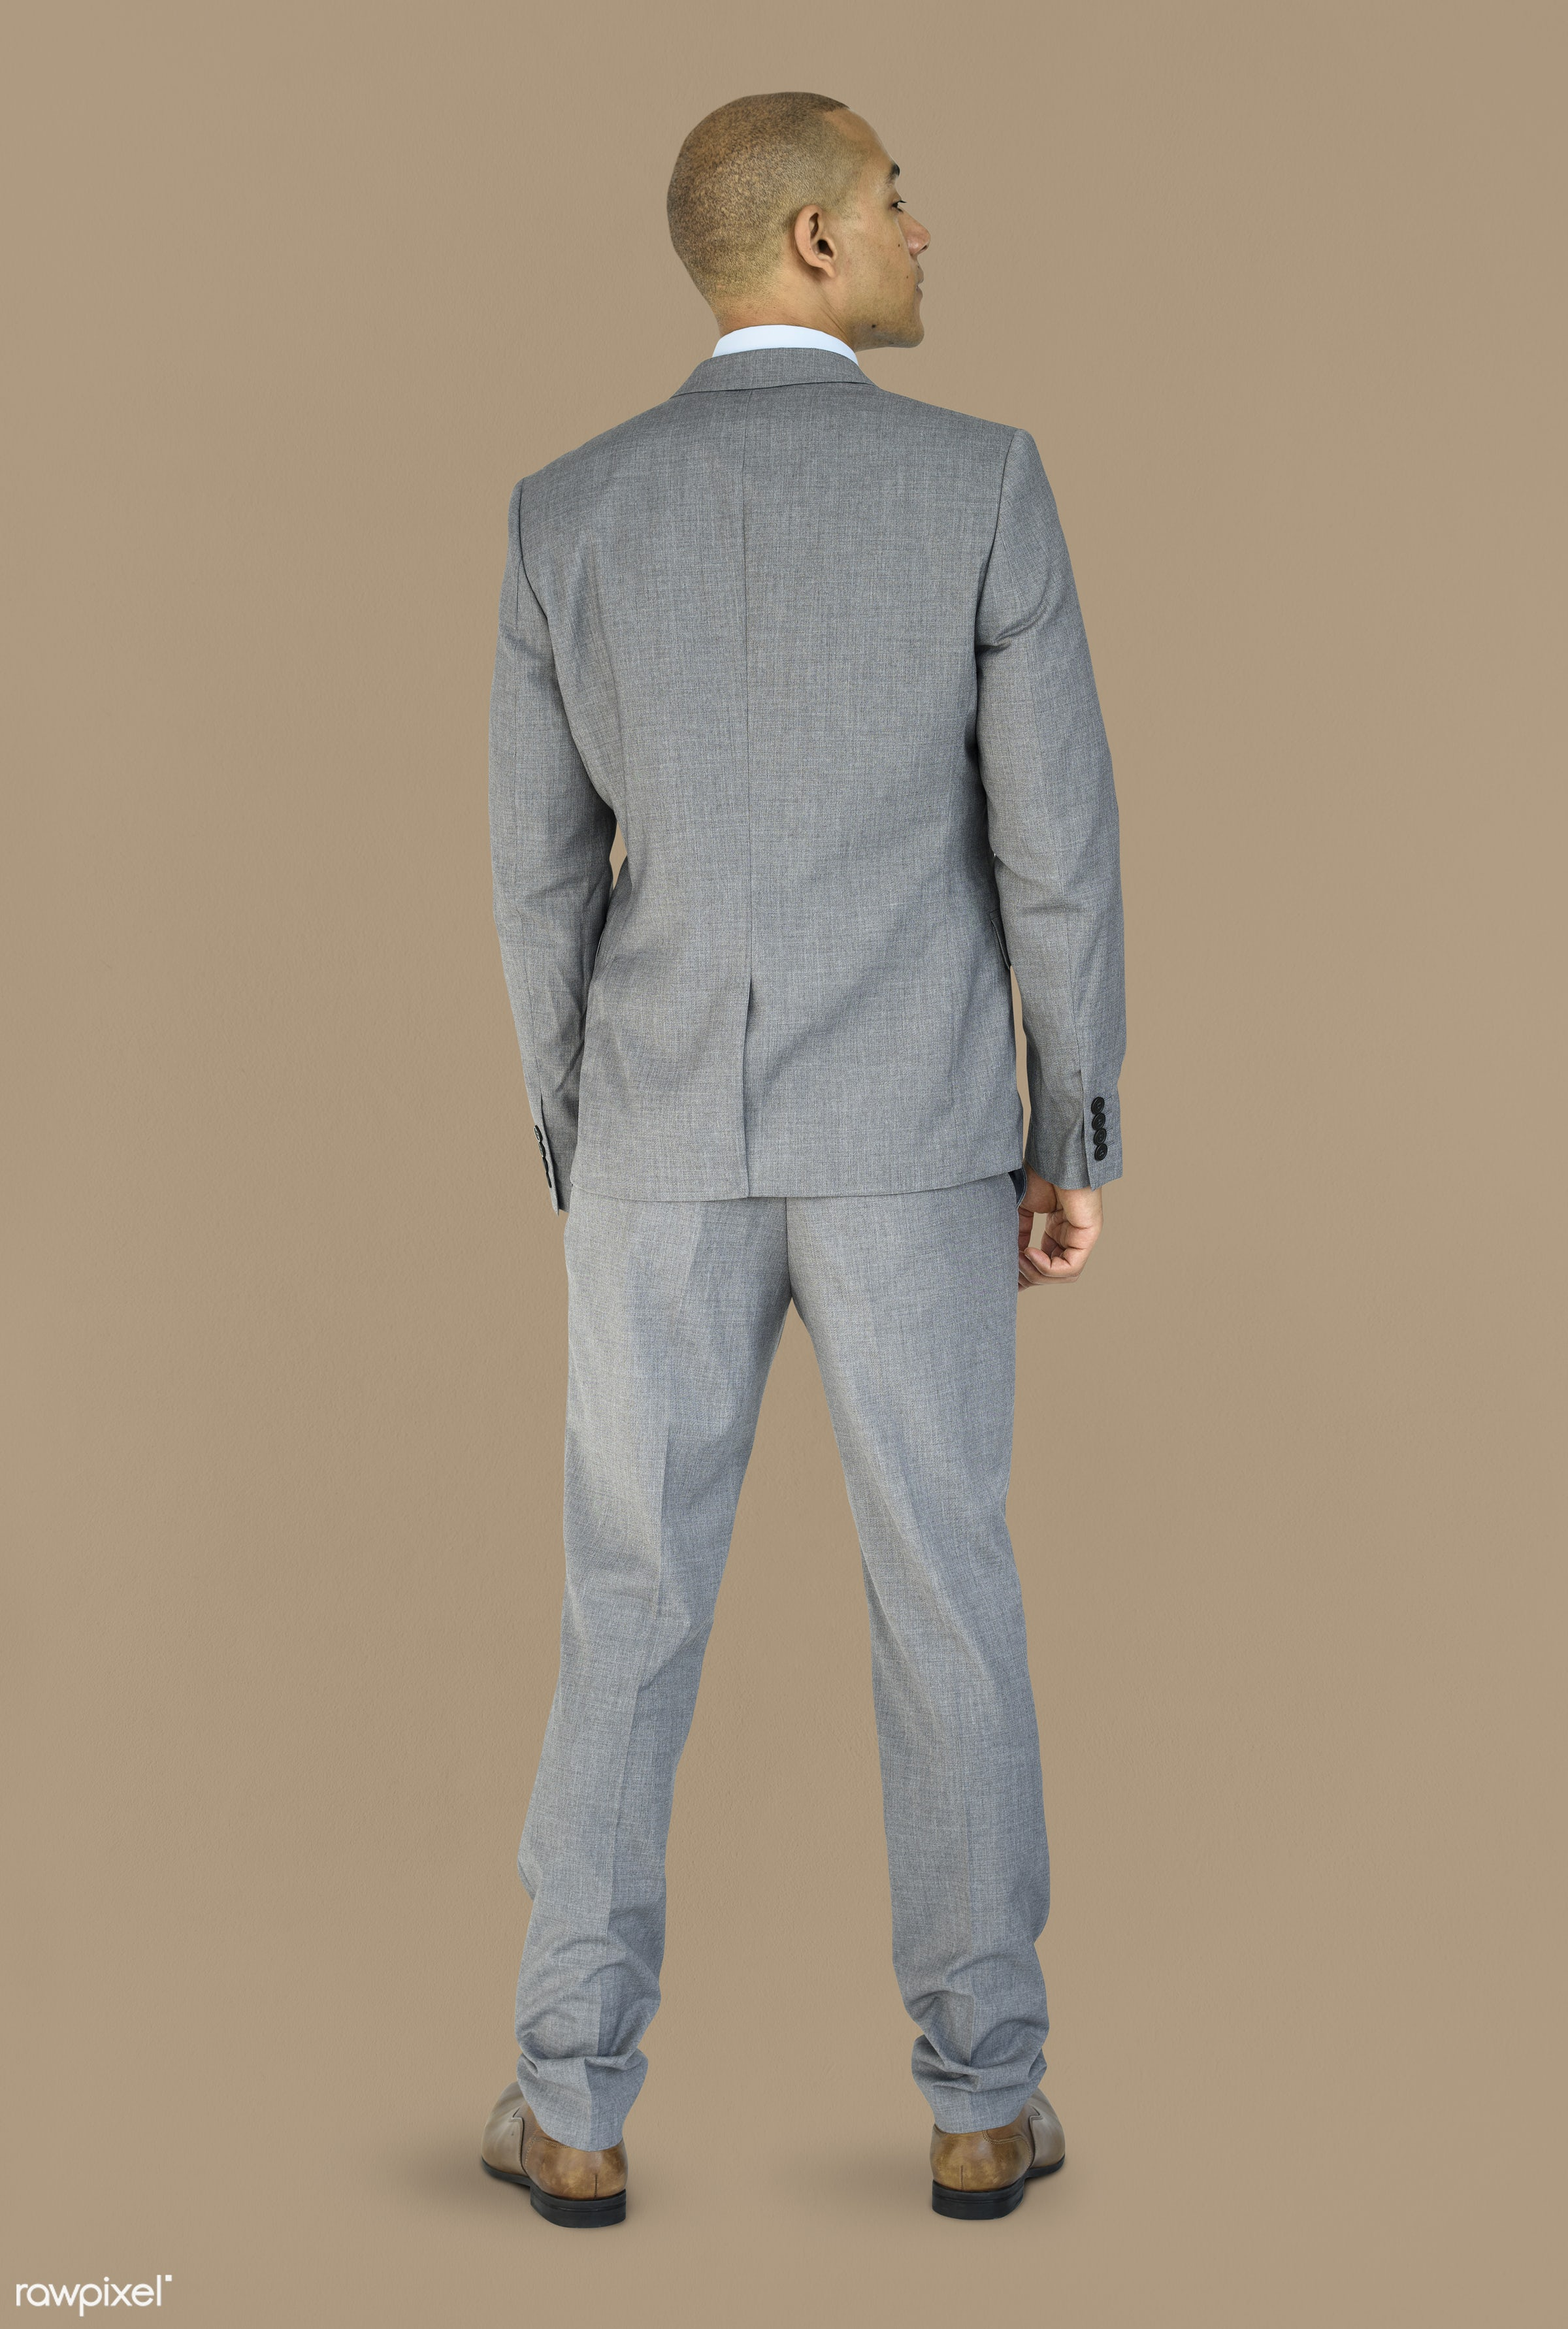 studio, person, people, business, businessman, man, abstract, rear view, isolated, male, adult, portrait, formal, mature,...